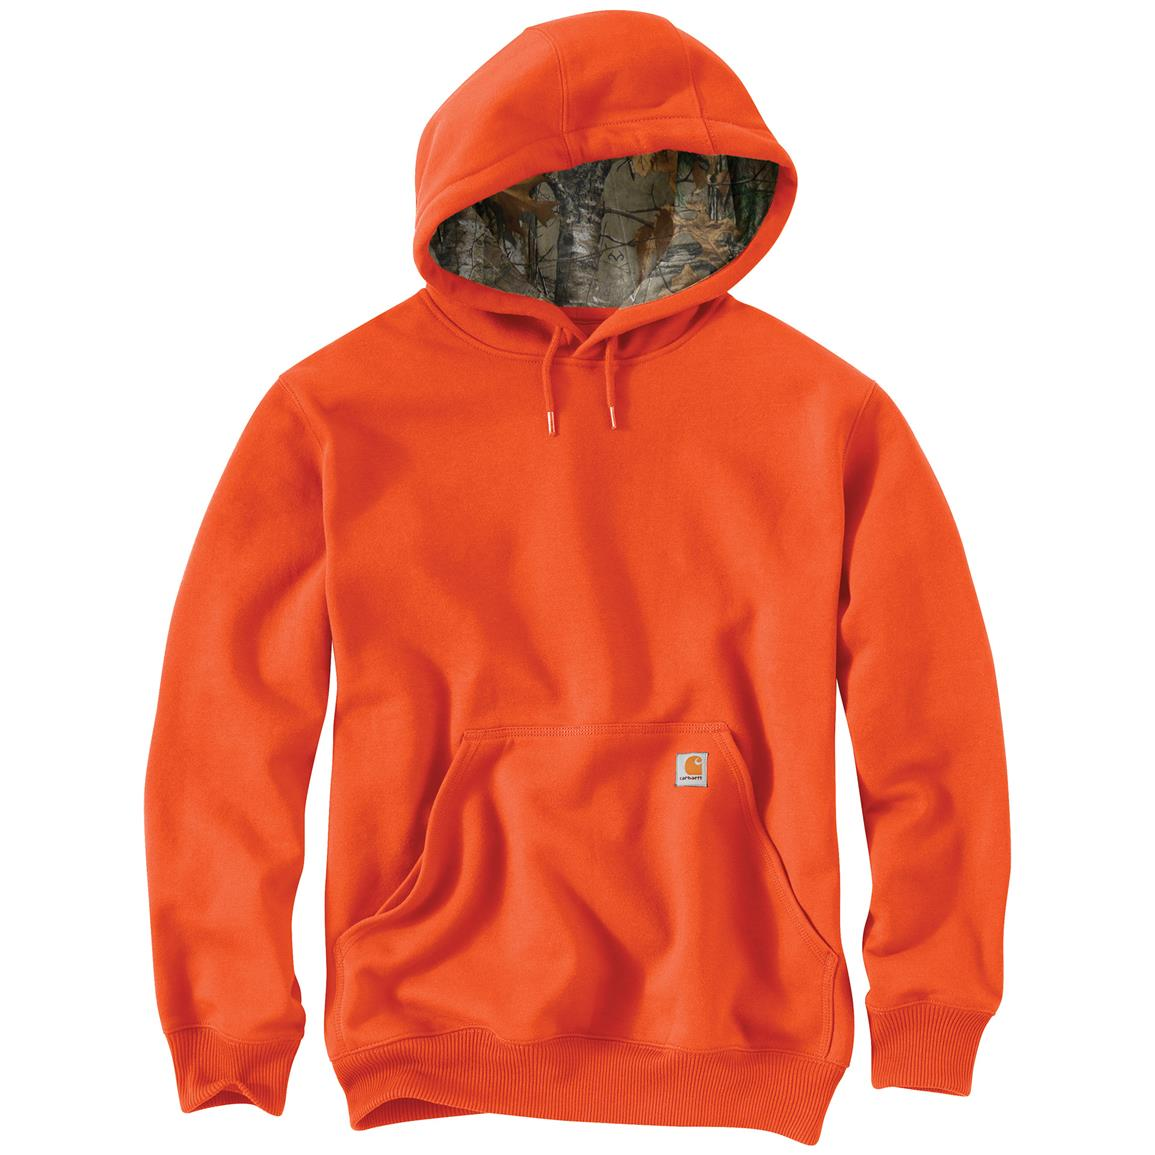 Carhartt Men's Houghton Camo Hoodie Sweatshirt, Orange